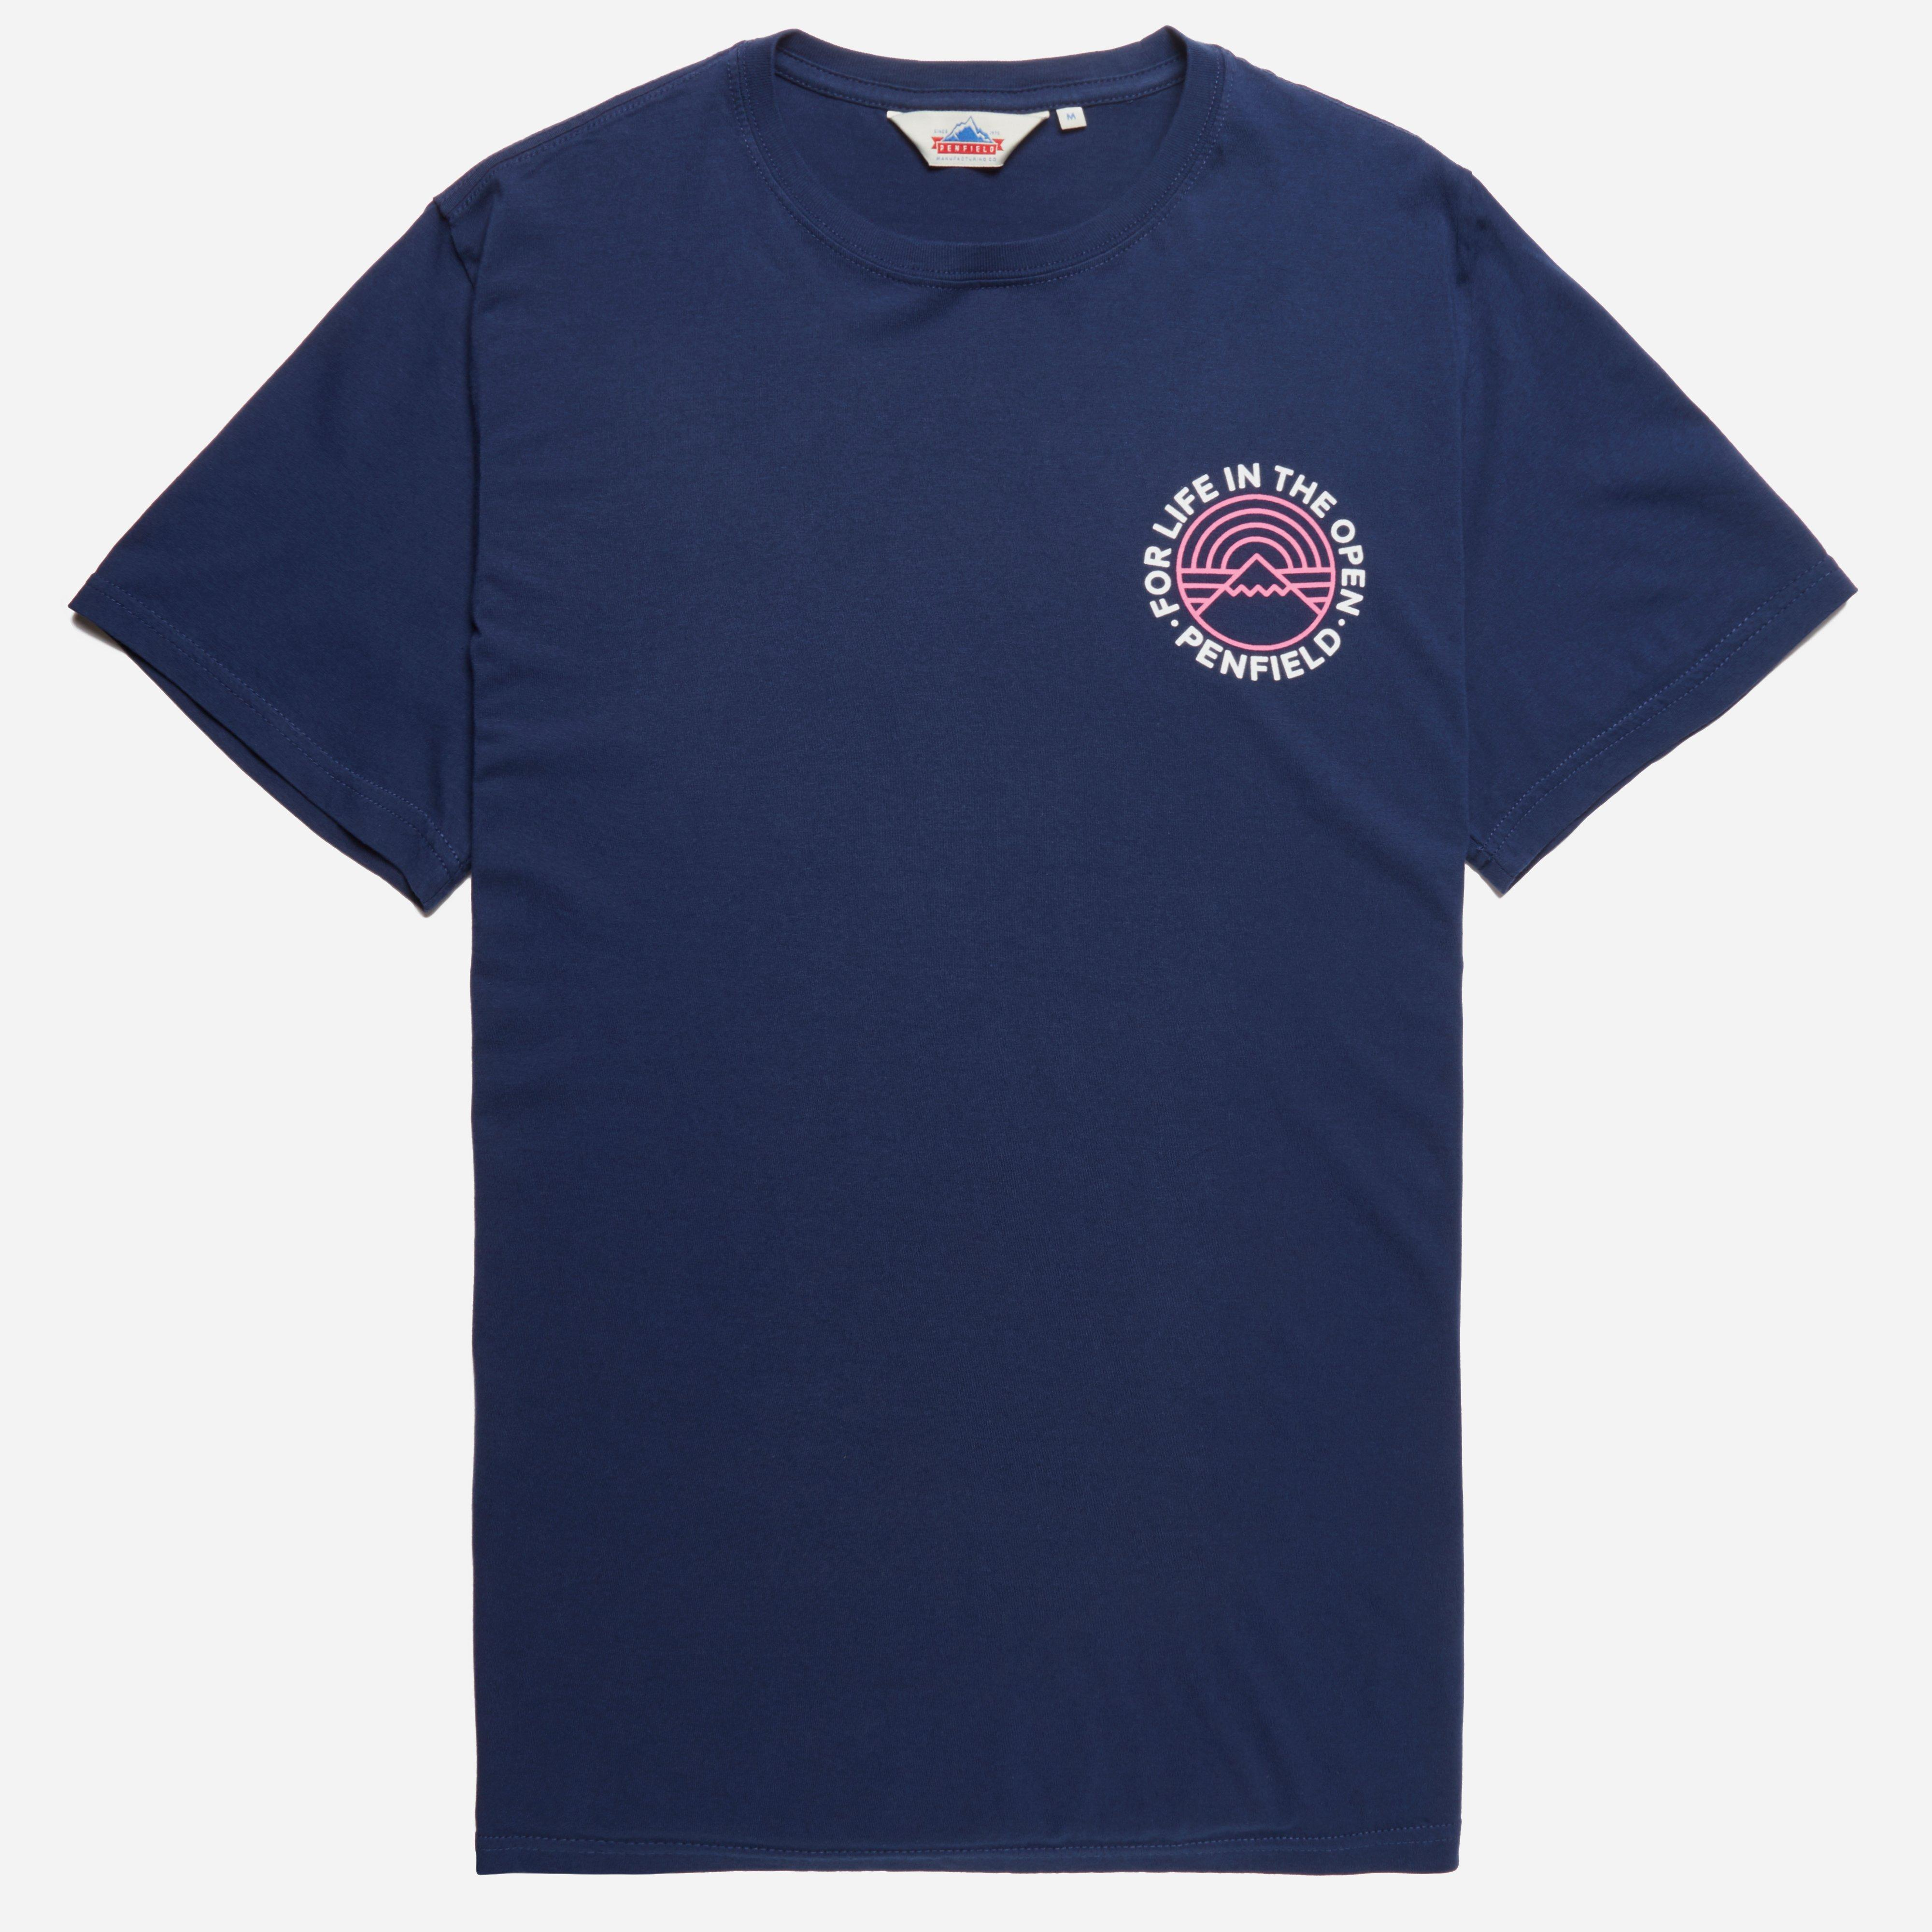 Penfield Emblem T-shirt